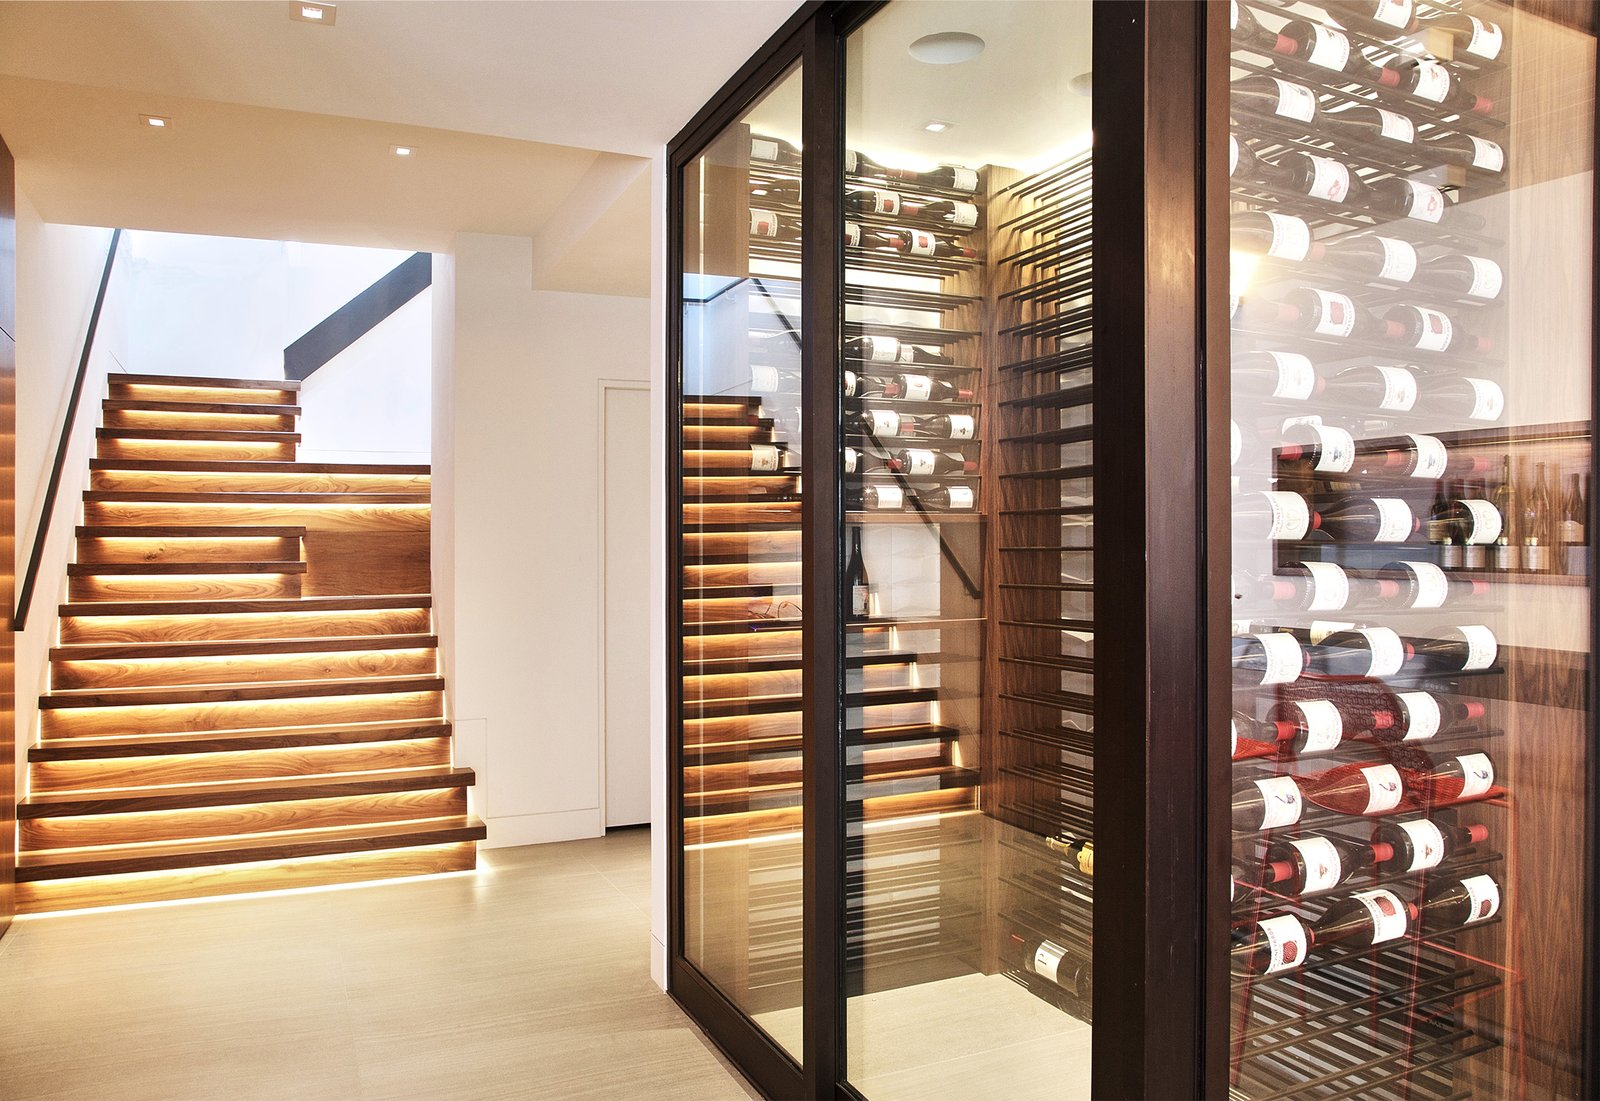 Staircase, Wood Tread, Wood Railing, and Glass Railing Stairs + Wine Room  Lyon Residence by Diego Pacheco Design Practice